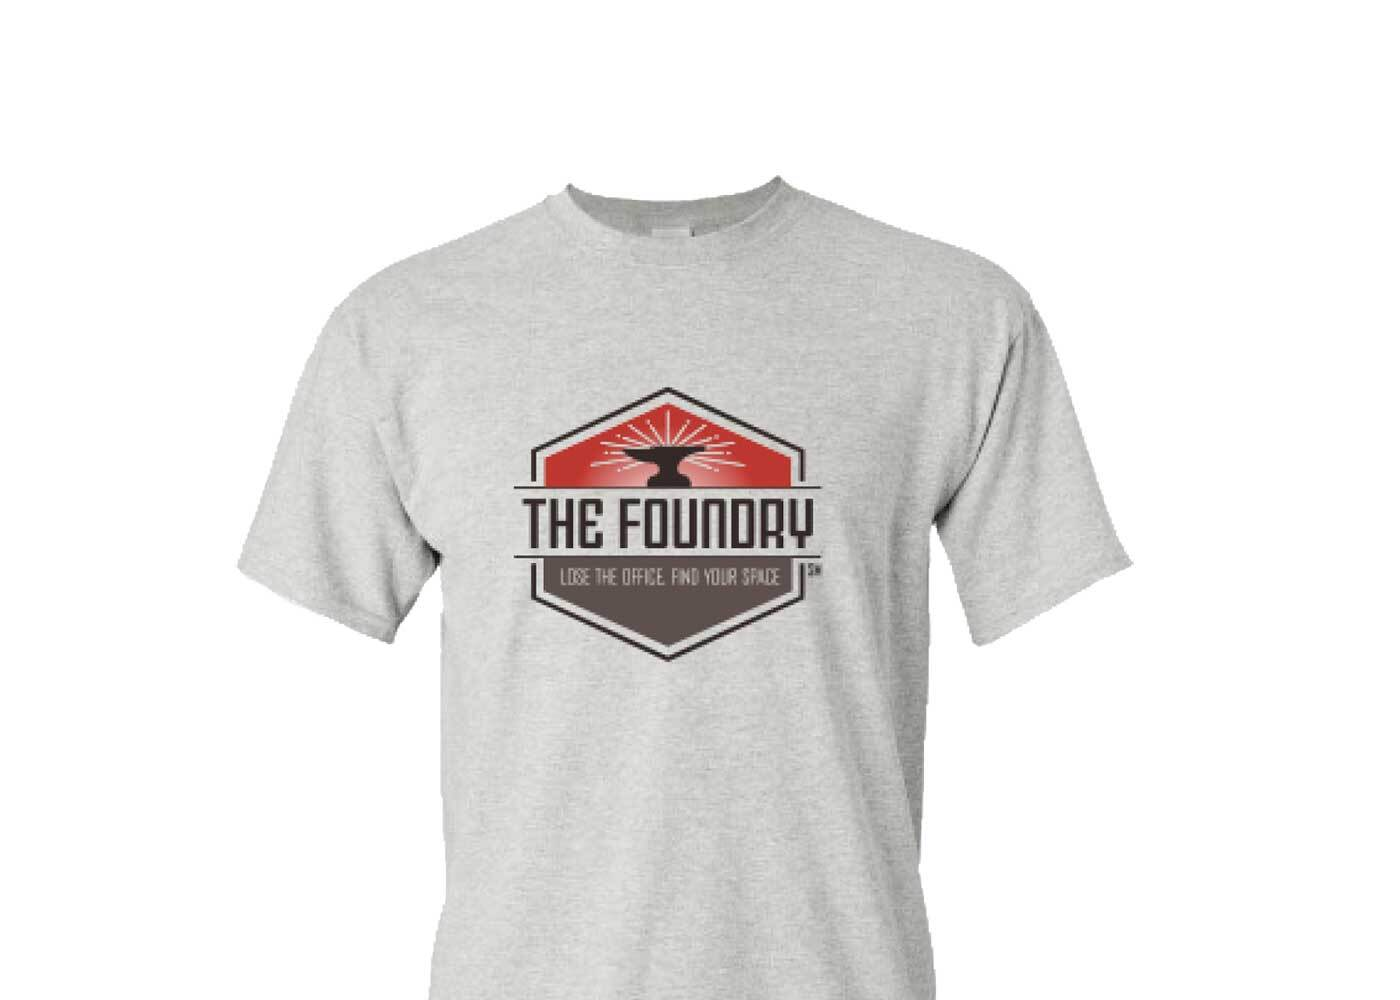 Treystar The Foundry shirts - Experience